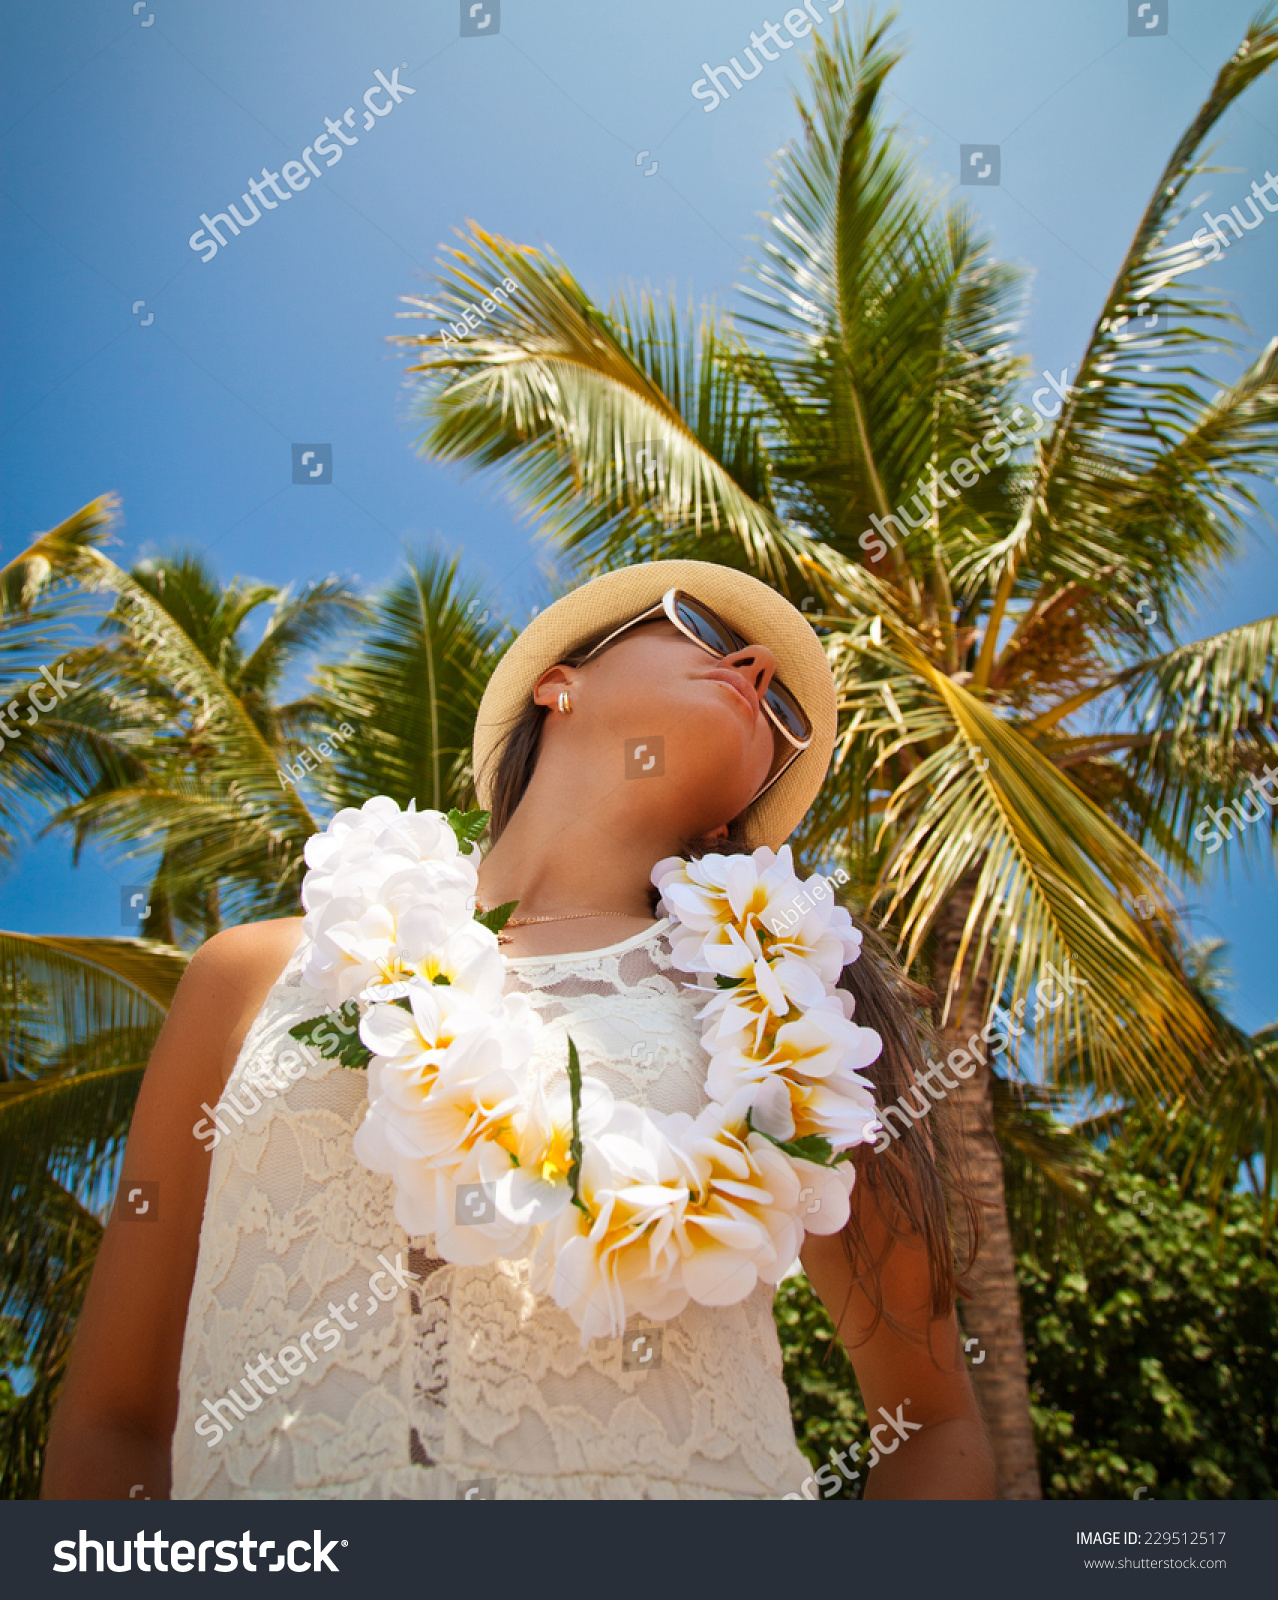 Hawaii woman flower lei garland white stock photo 229512517 hawaii woman with flower lei garland of white flowers portrait of a beautiful young woman izmirmasajfo Images